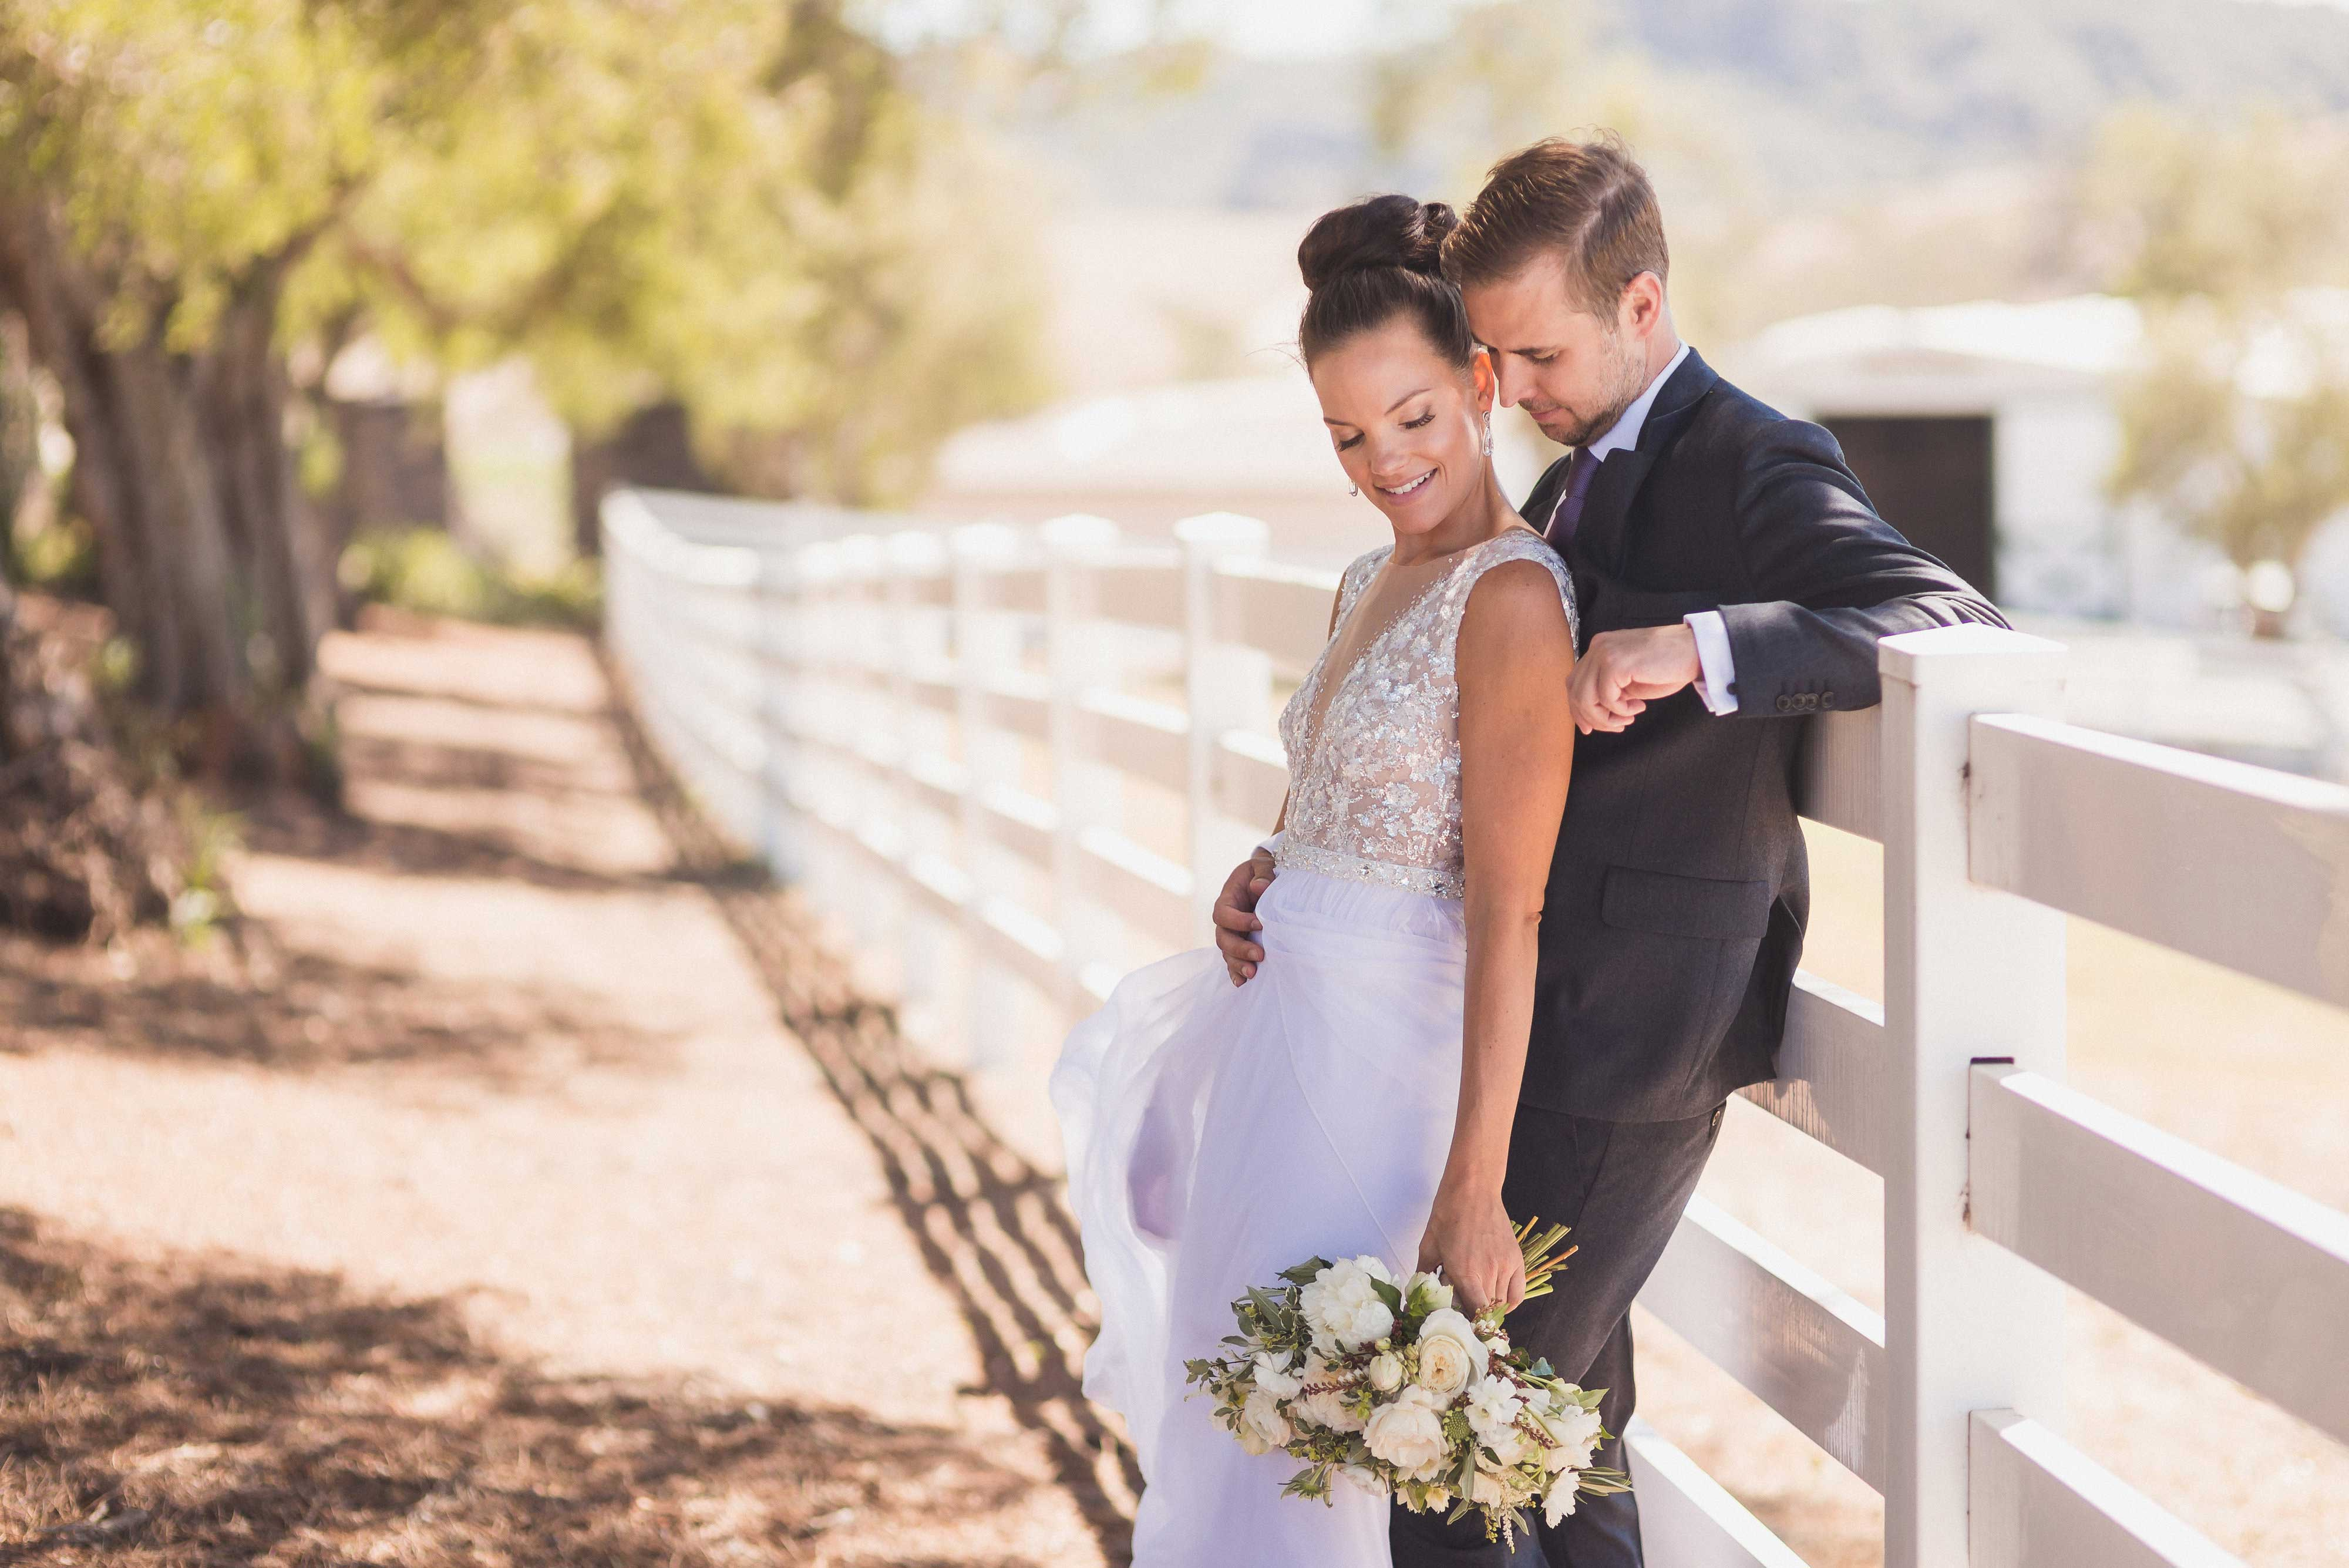 Bride In Dress From Carines Bridal With Husband By White Picket Fence